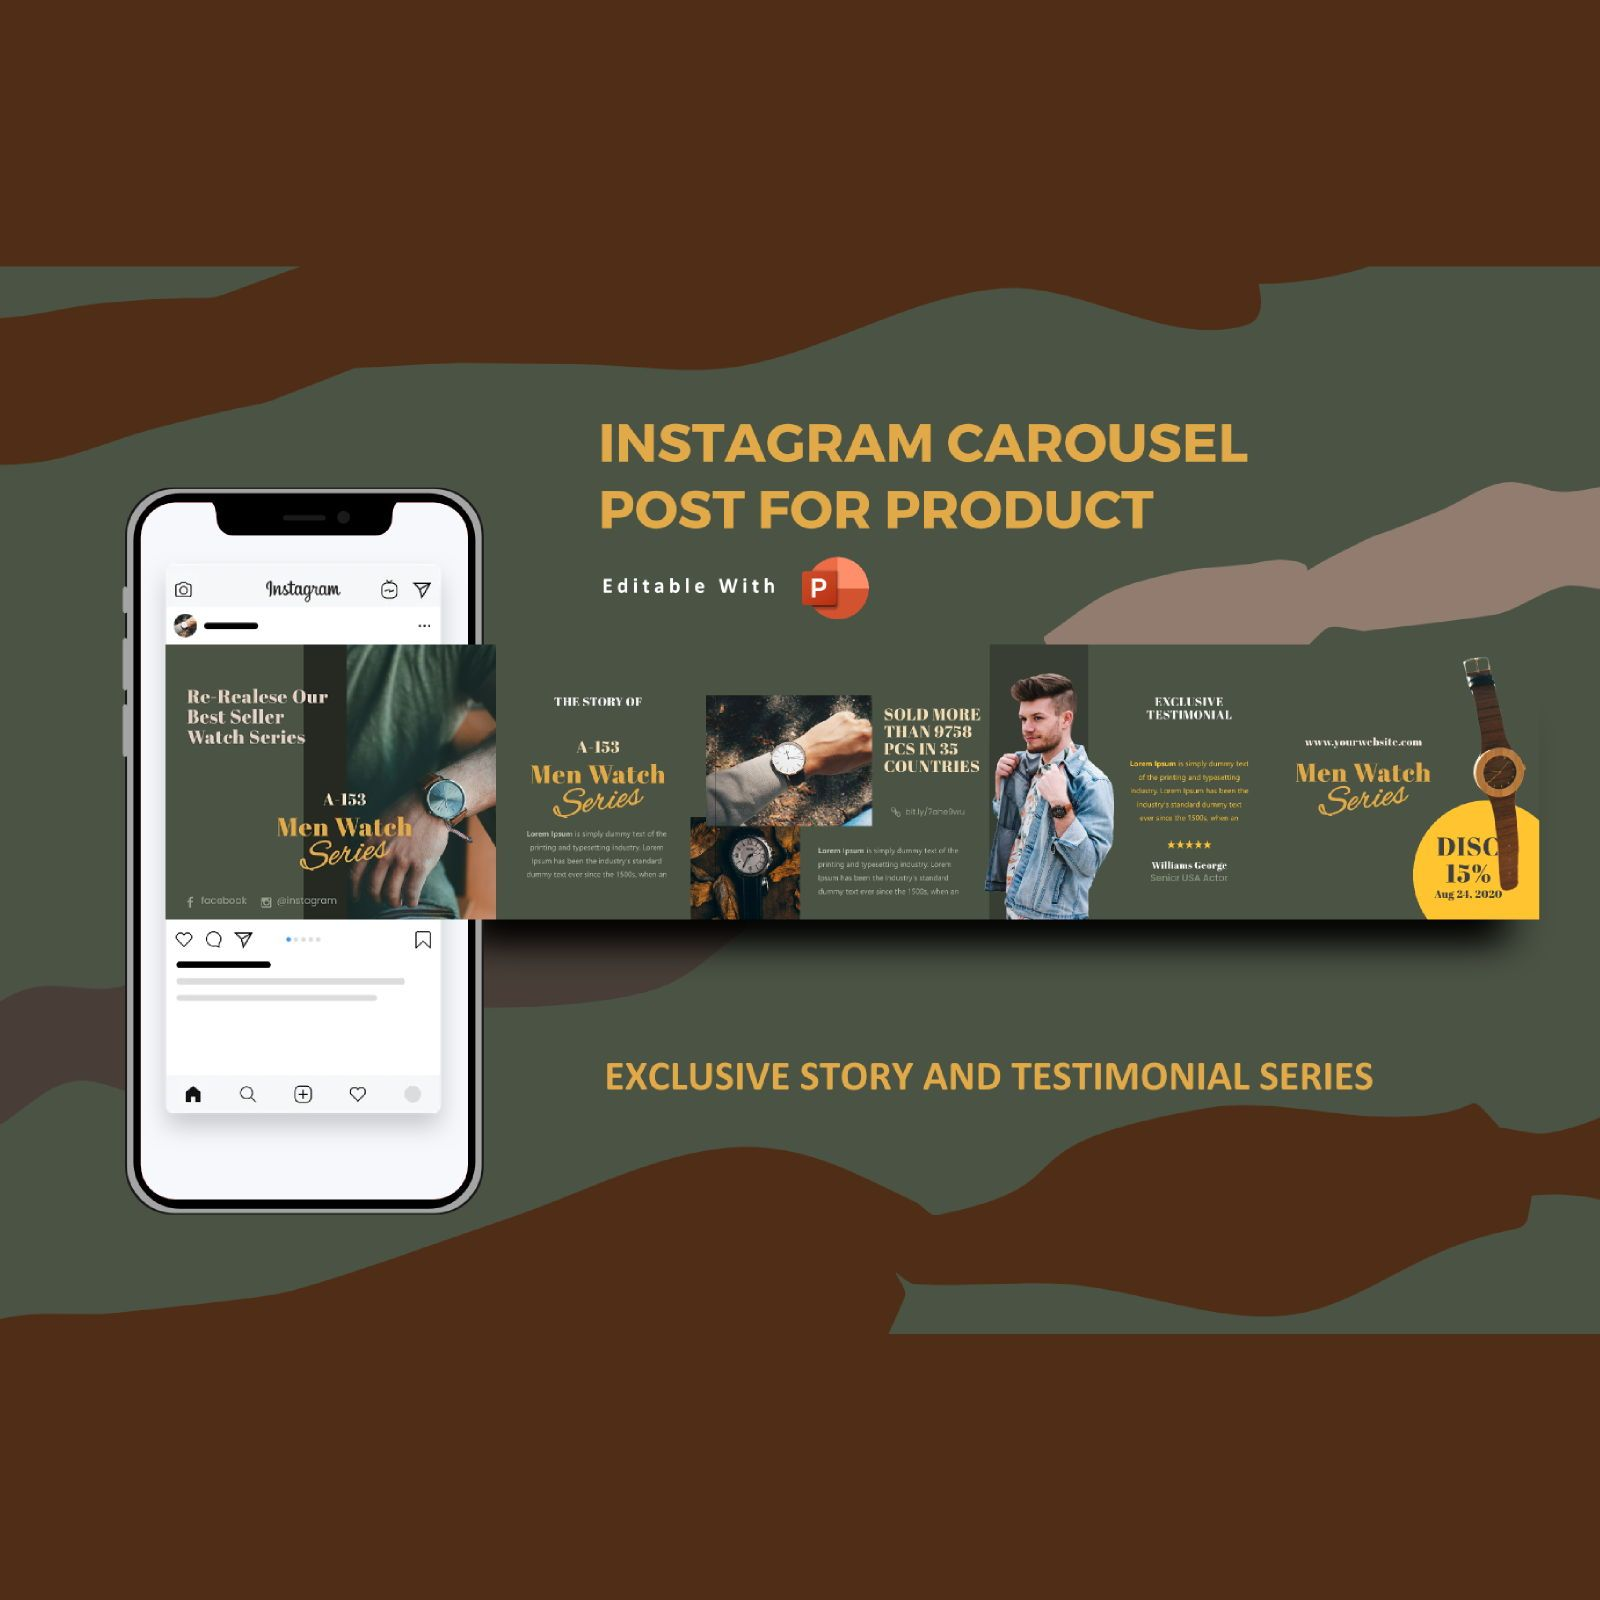 Exclusive watch men story and testimonial instagram carousel powerpoint template, 07144, Business Models — PoweredTemplate.com